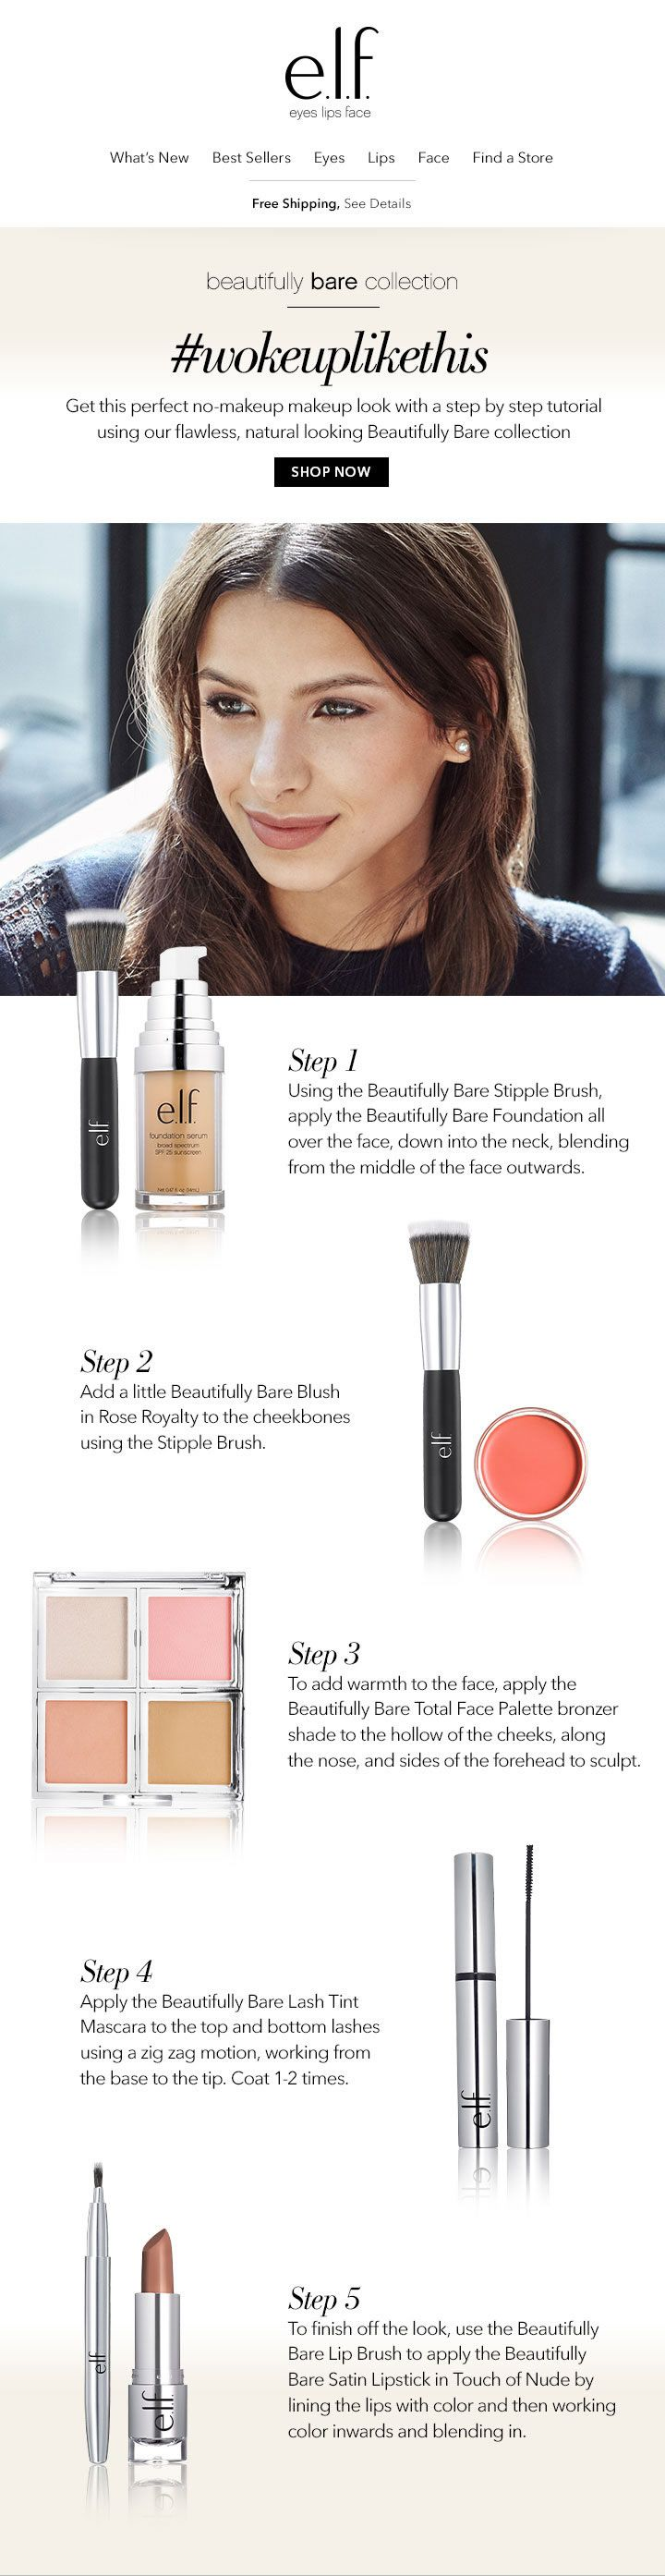 Get the perfect no-makeup makeup look with this step by step tutorial.  CLIENT: e.l.f. Cosmetics Built by: Mark Nayve | SellUp